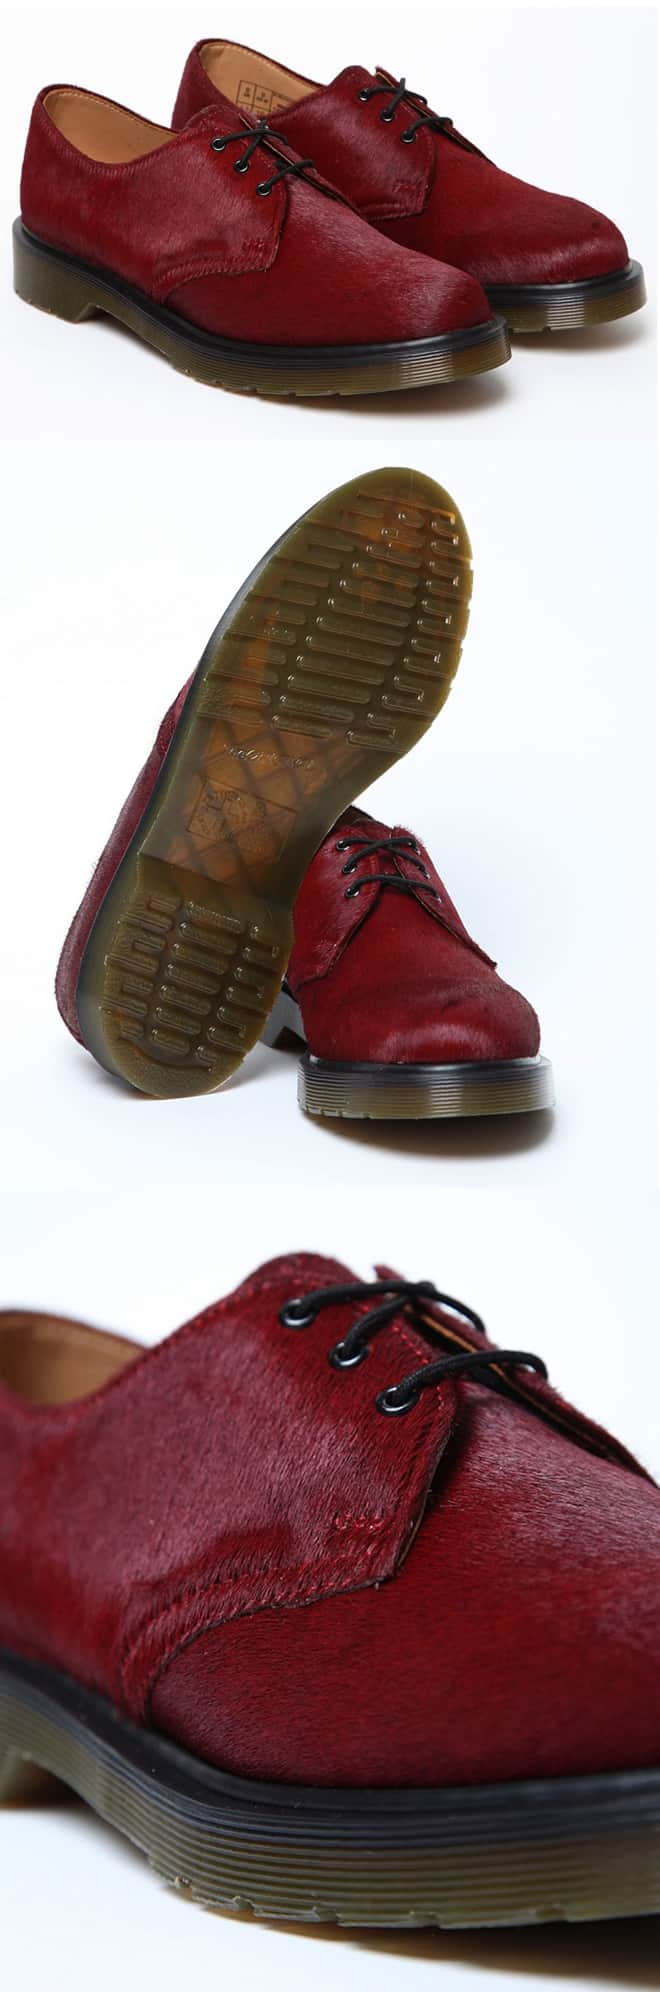 Dr Martens Hair on Horsey 3 Eye Derby Shoe Red